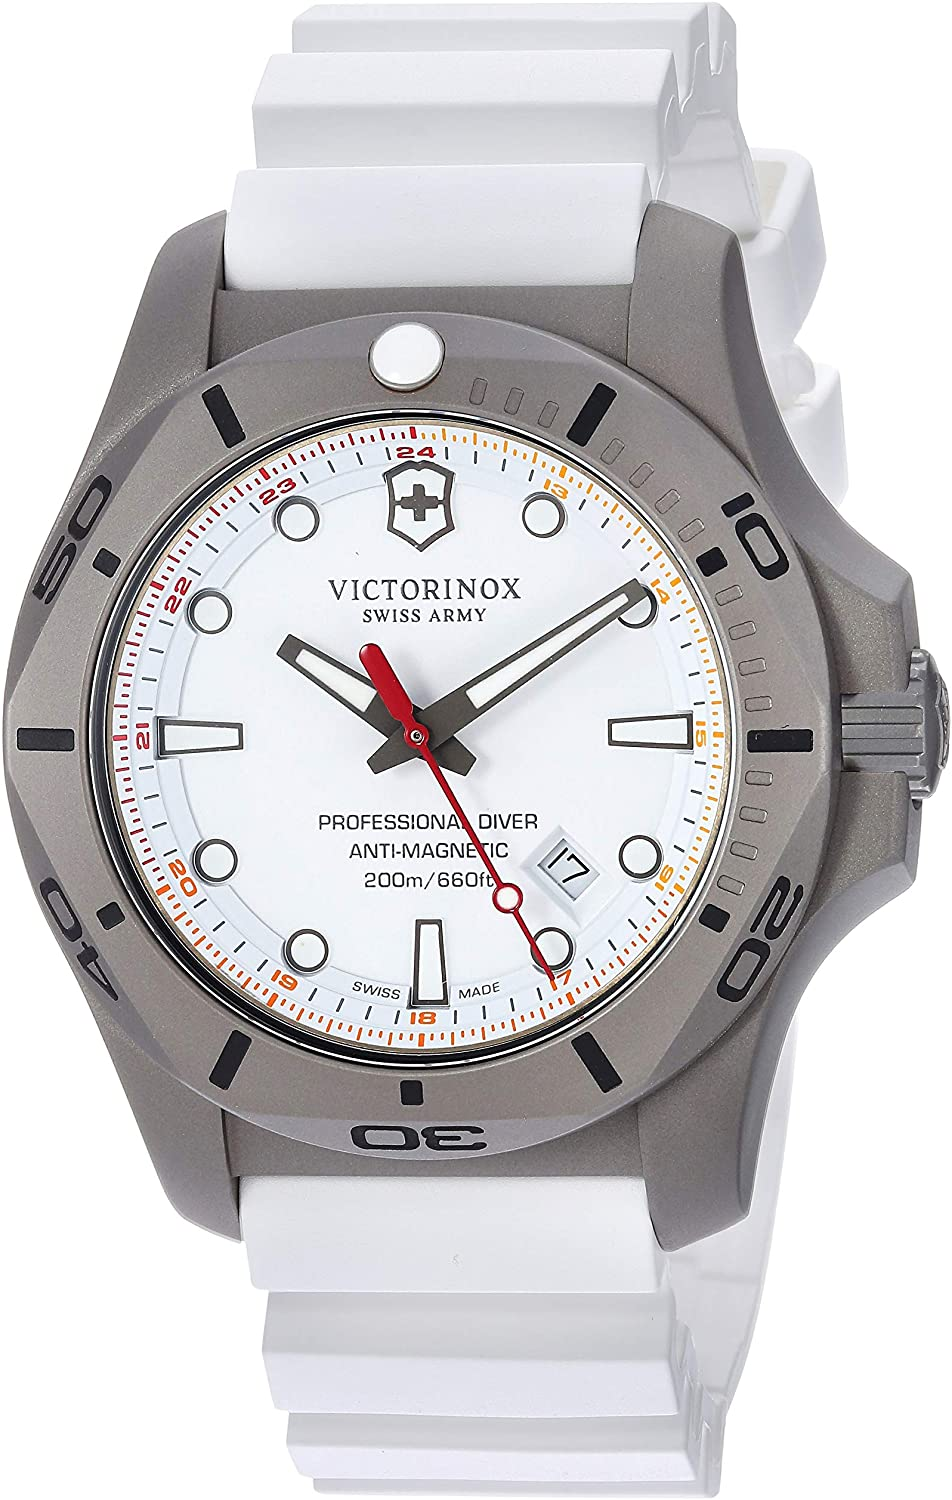 Victorinox Swiss Army Men s I.N.O.X. Pro Diver Watch